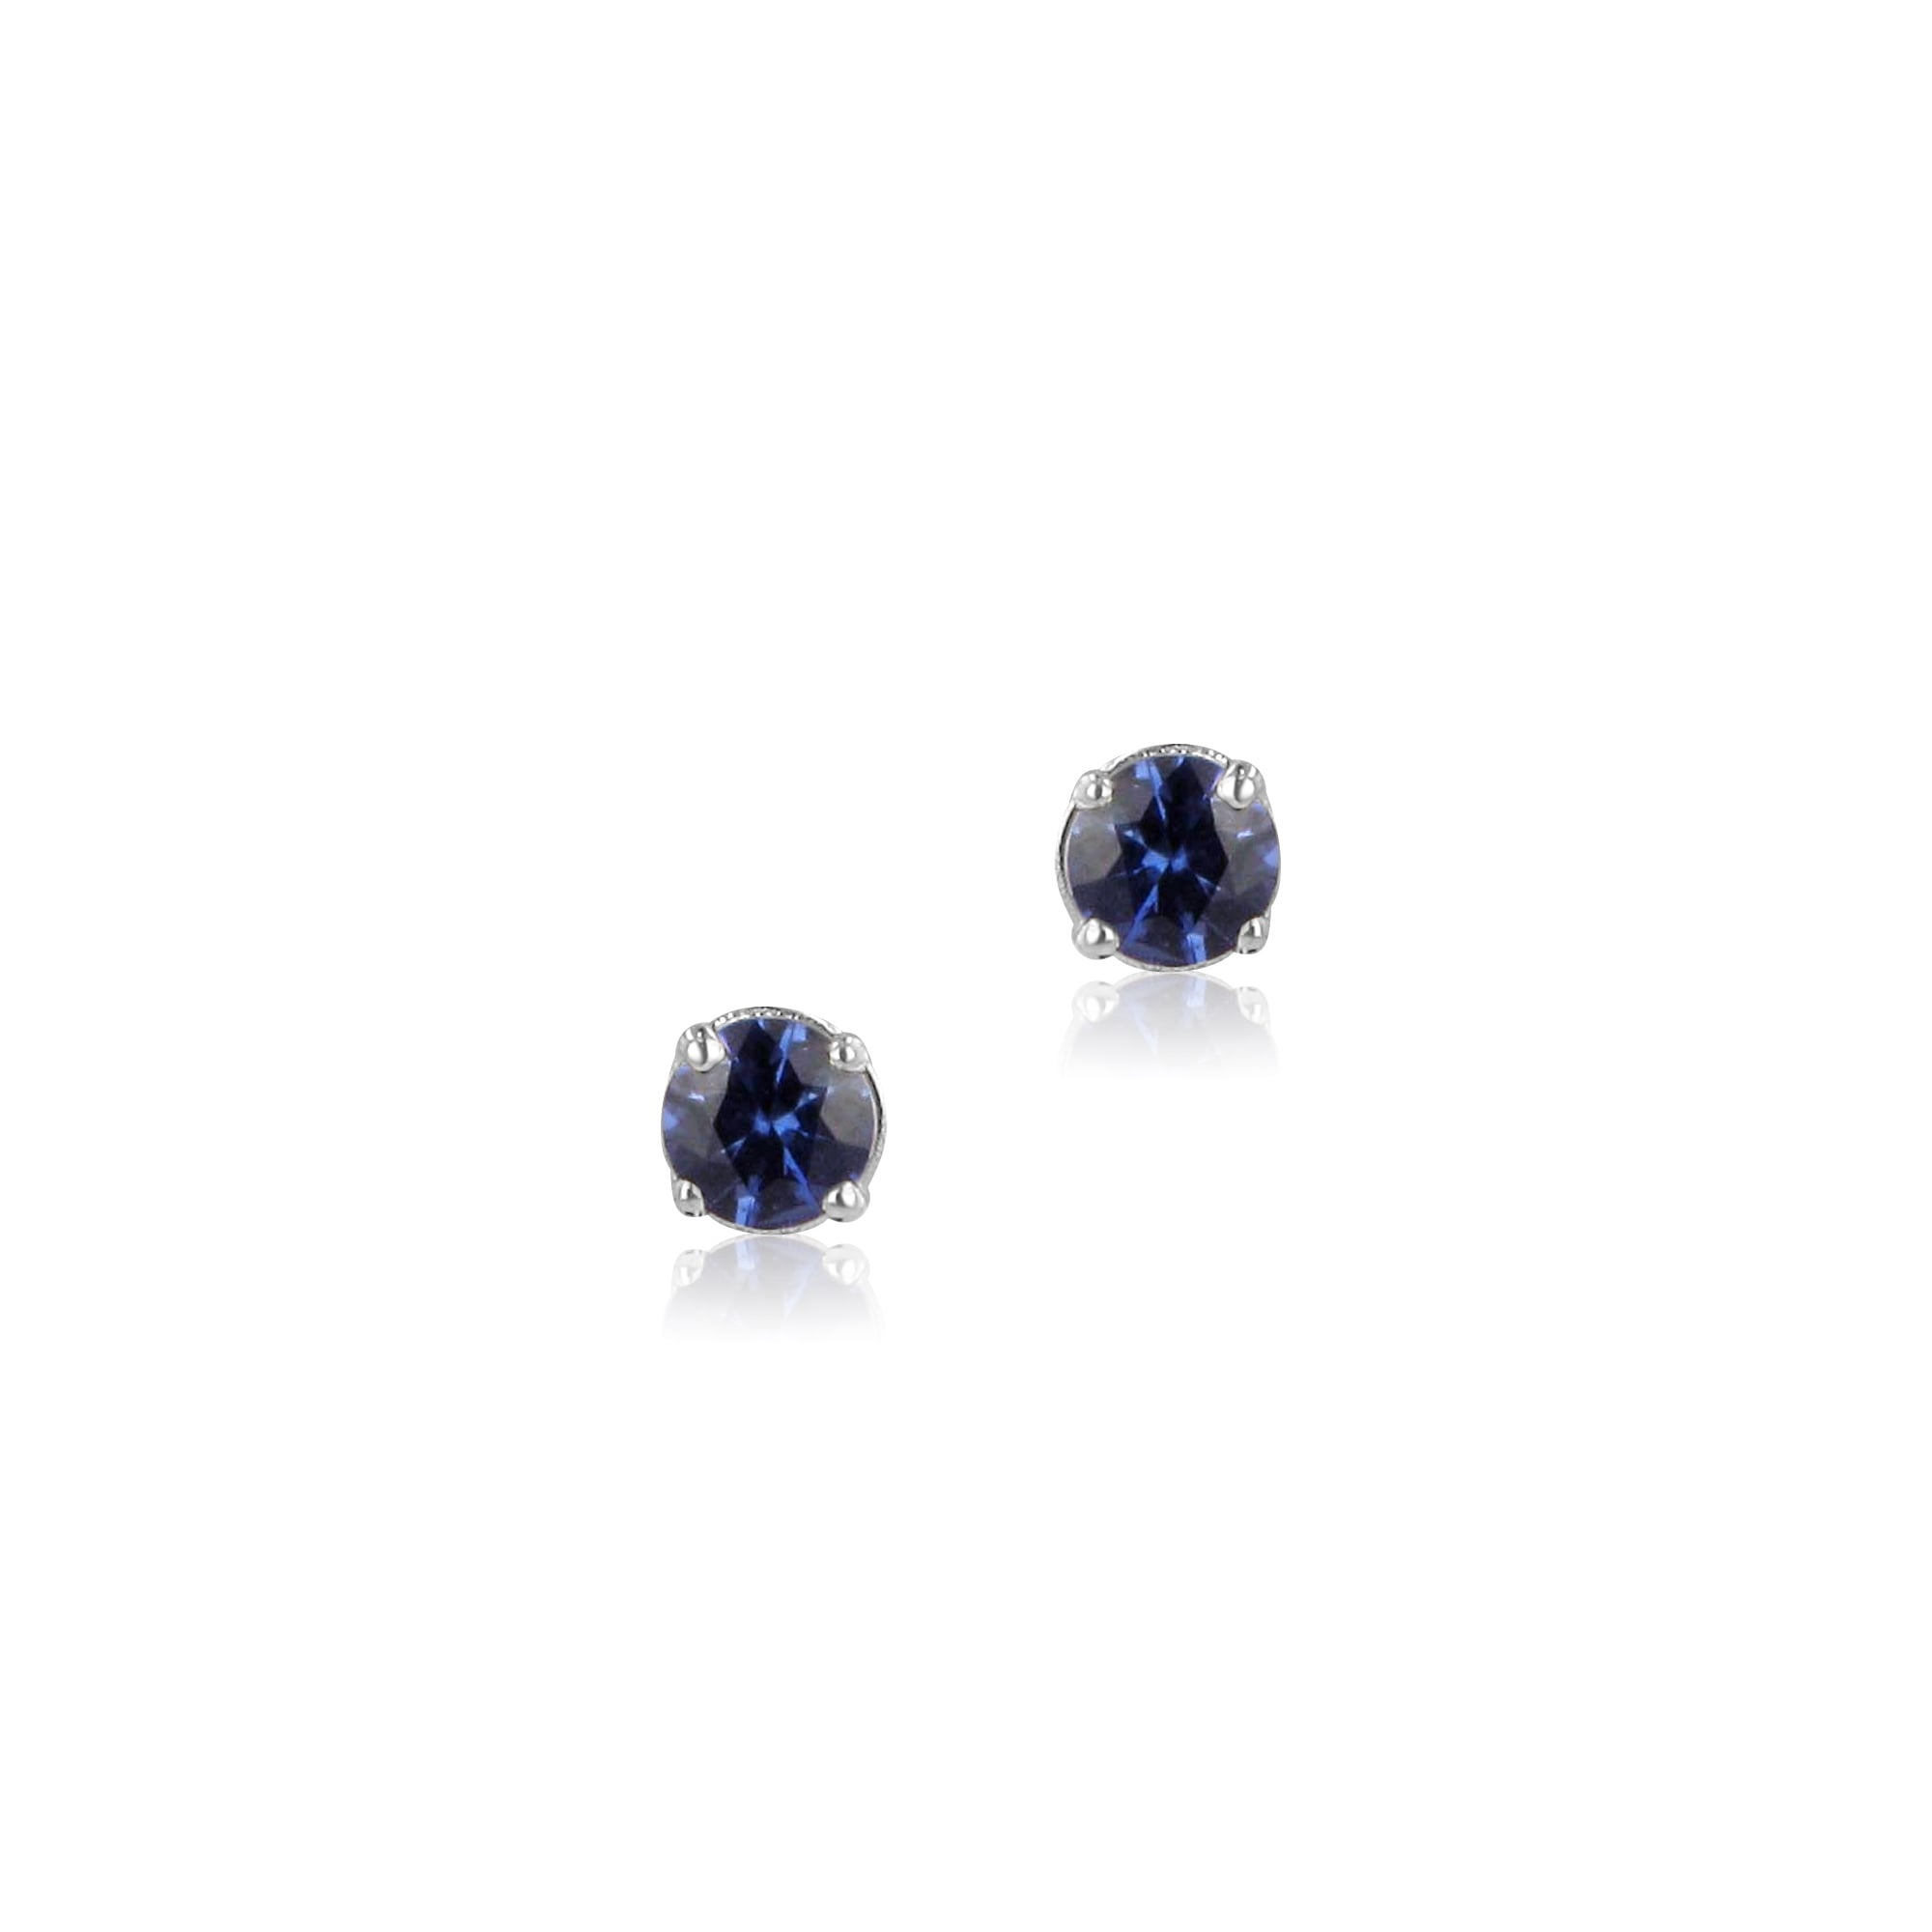 earrings faux classic cut studs cubic beloved bridal vintage sapphire wedding carat daily silver kate fashion diamond royal cz sparkles oval halo products stud zirconia blue